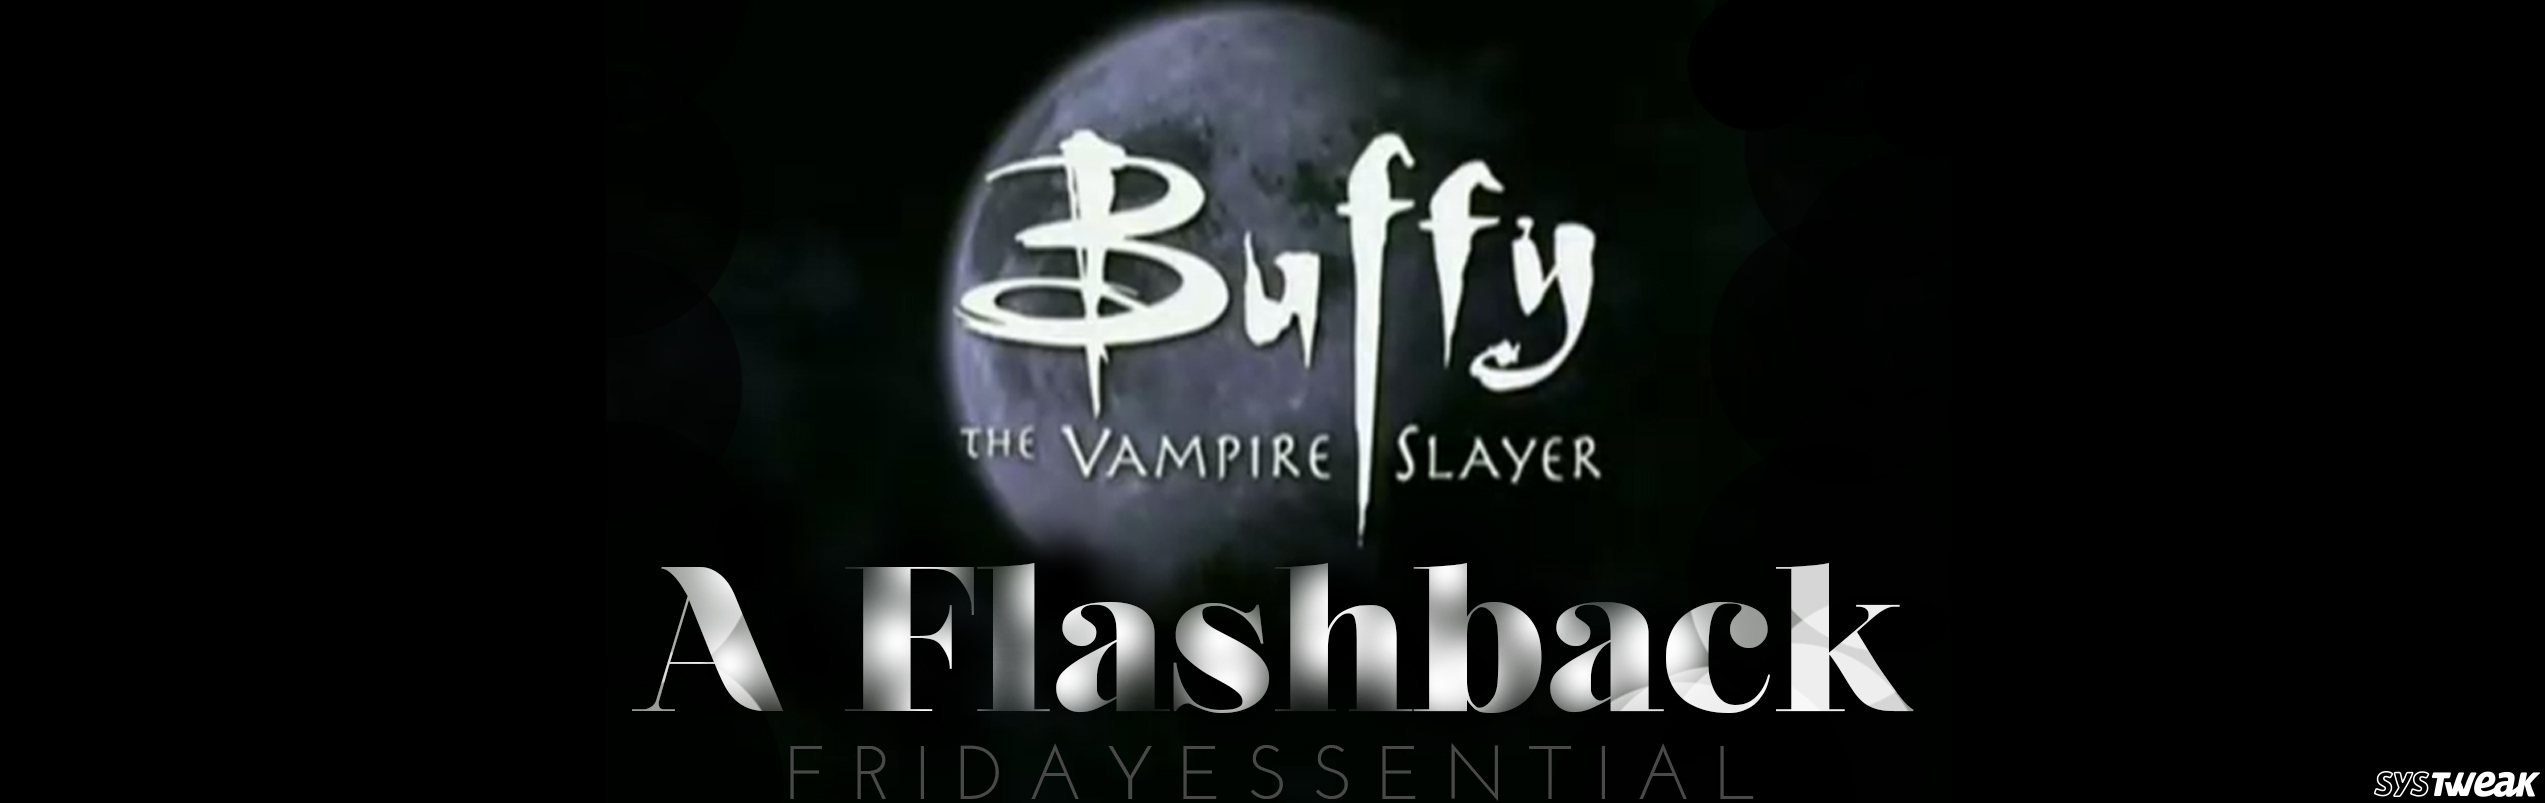 Friday Essential: Buffy Verse! Once in a Generation